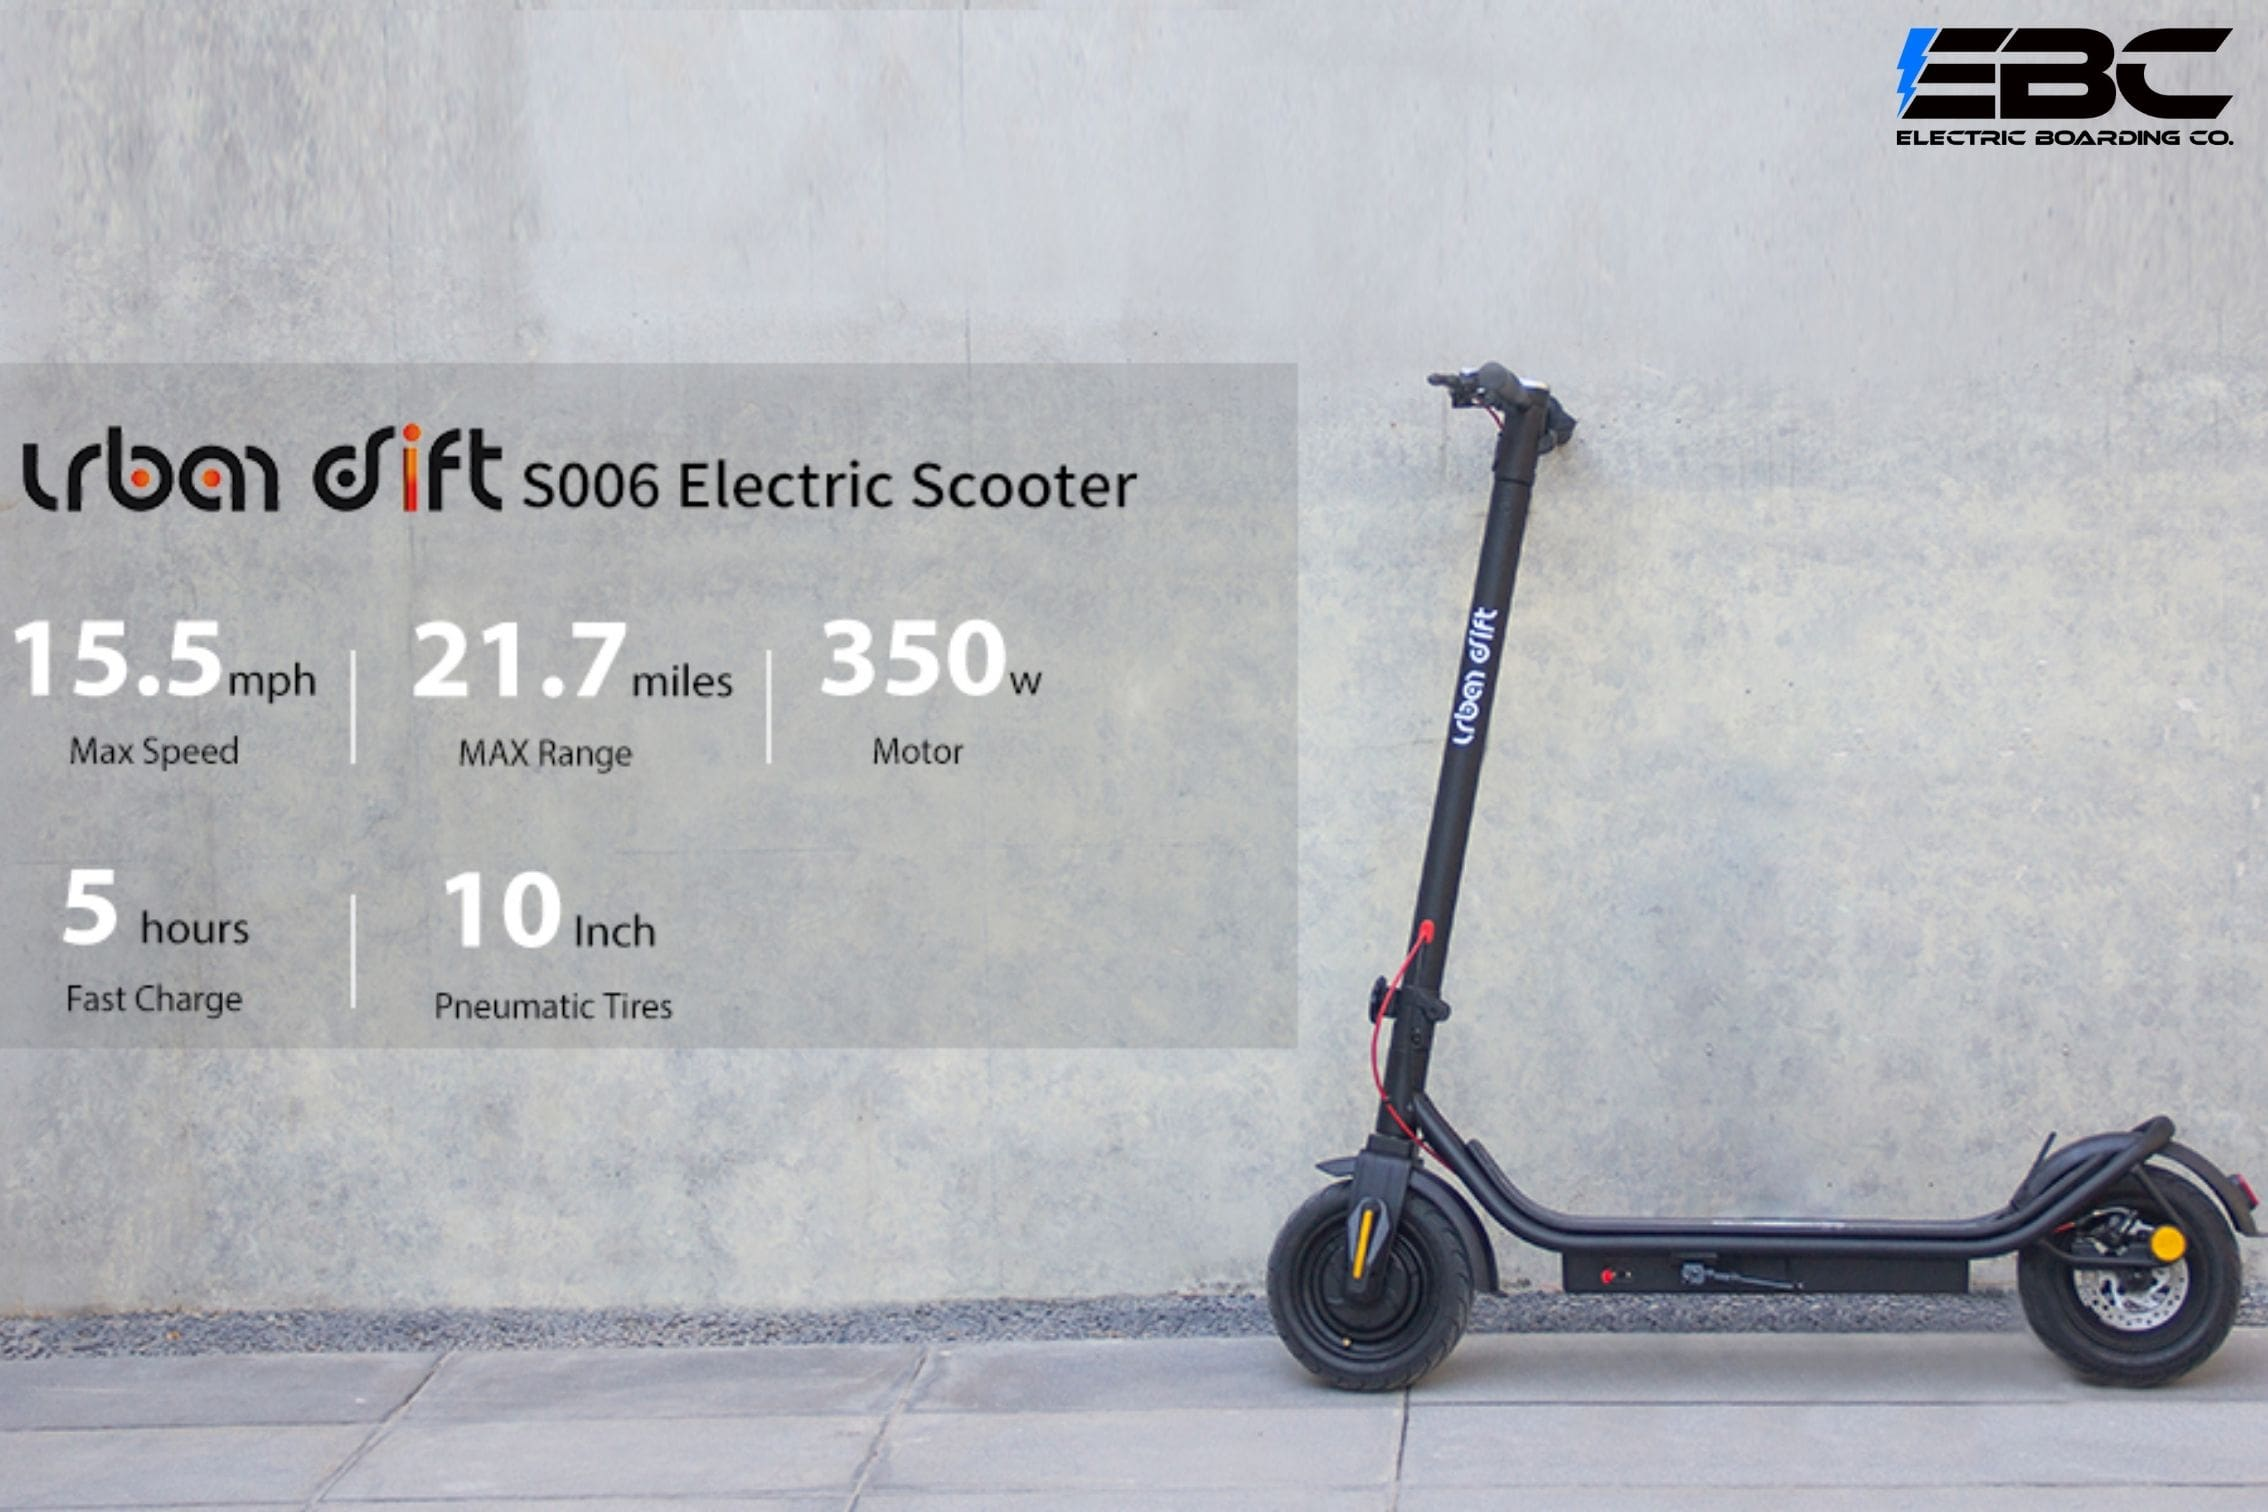 Urban Drift Electric Scooters Collection Page